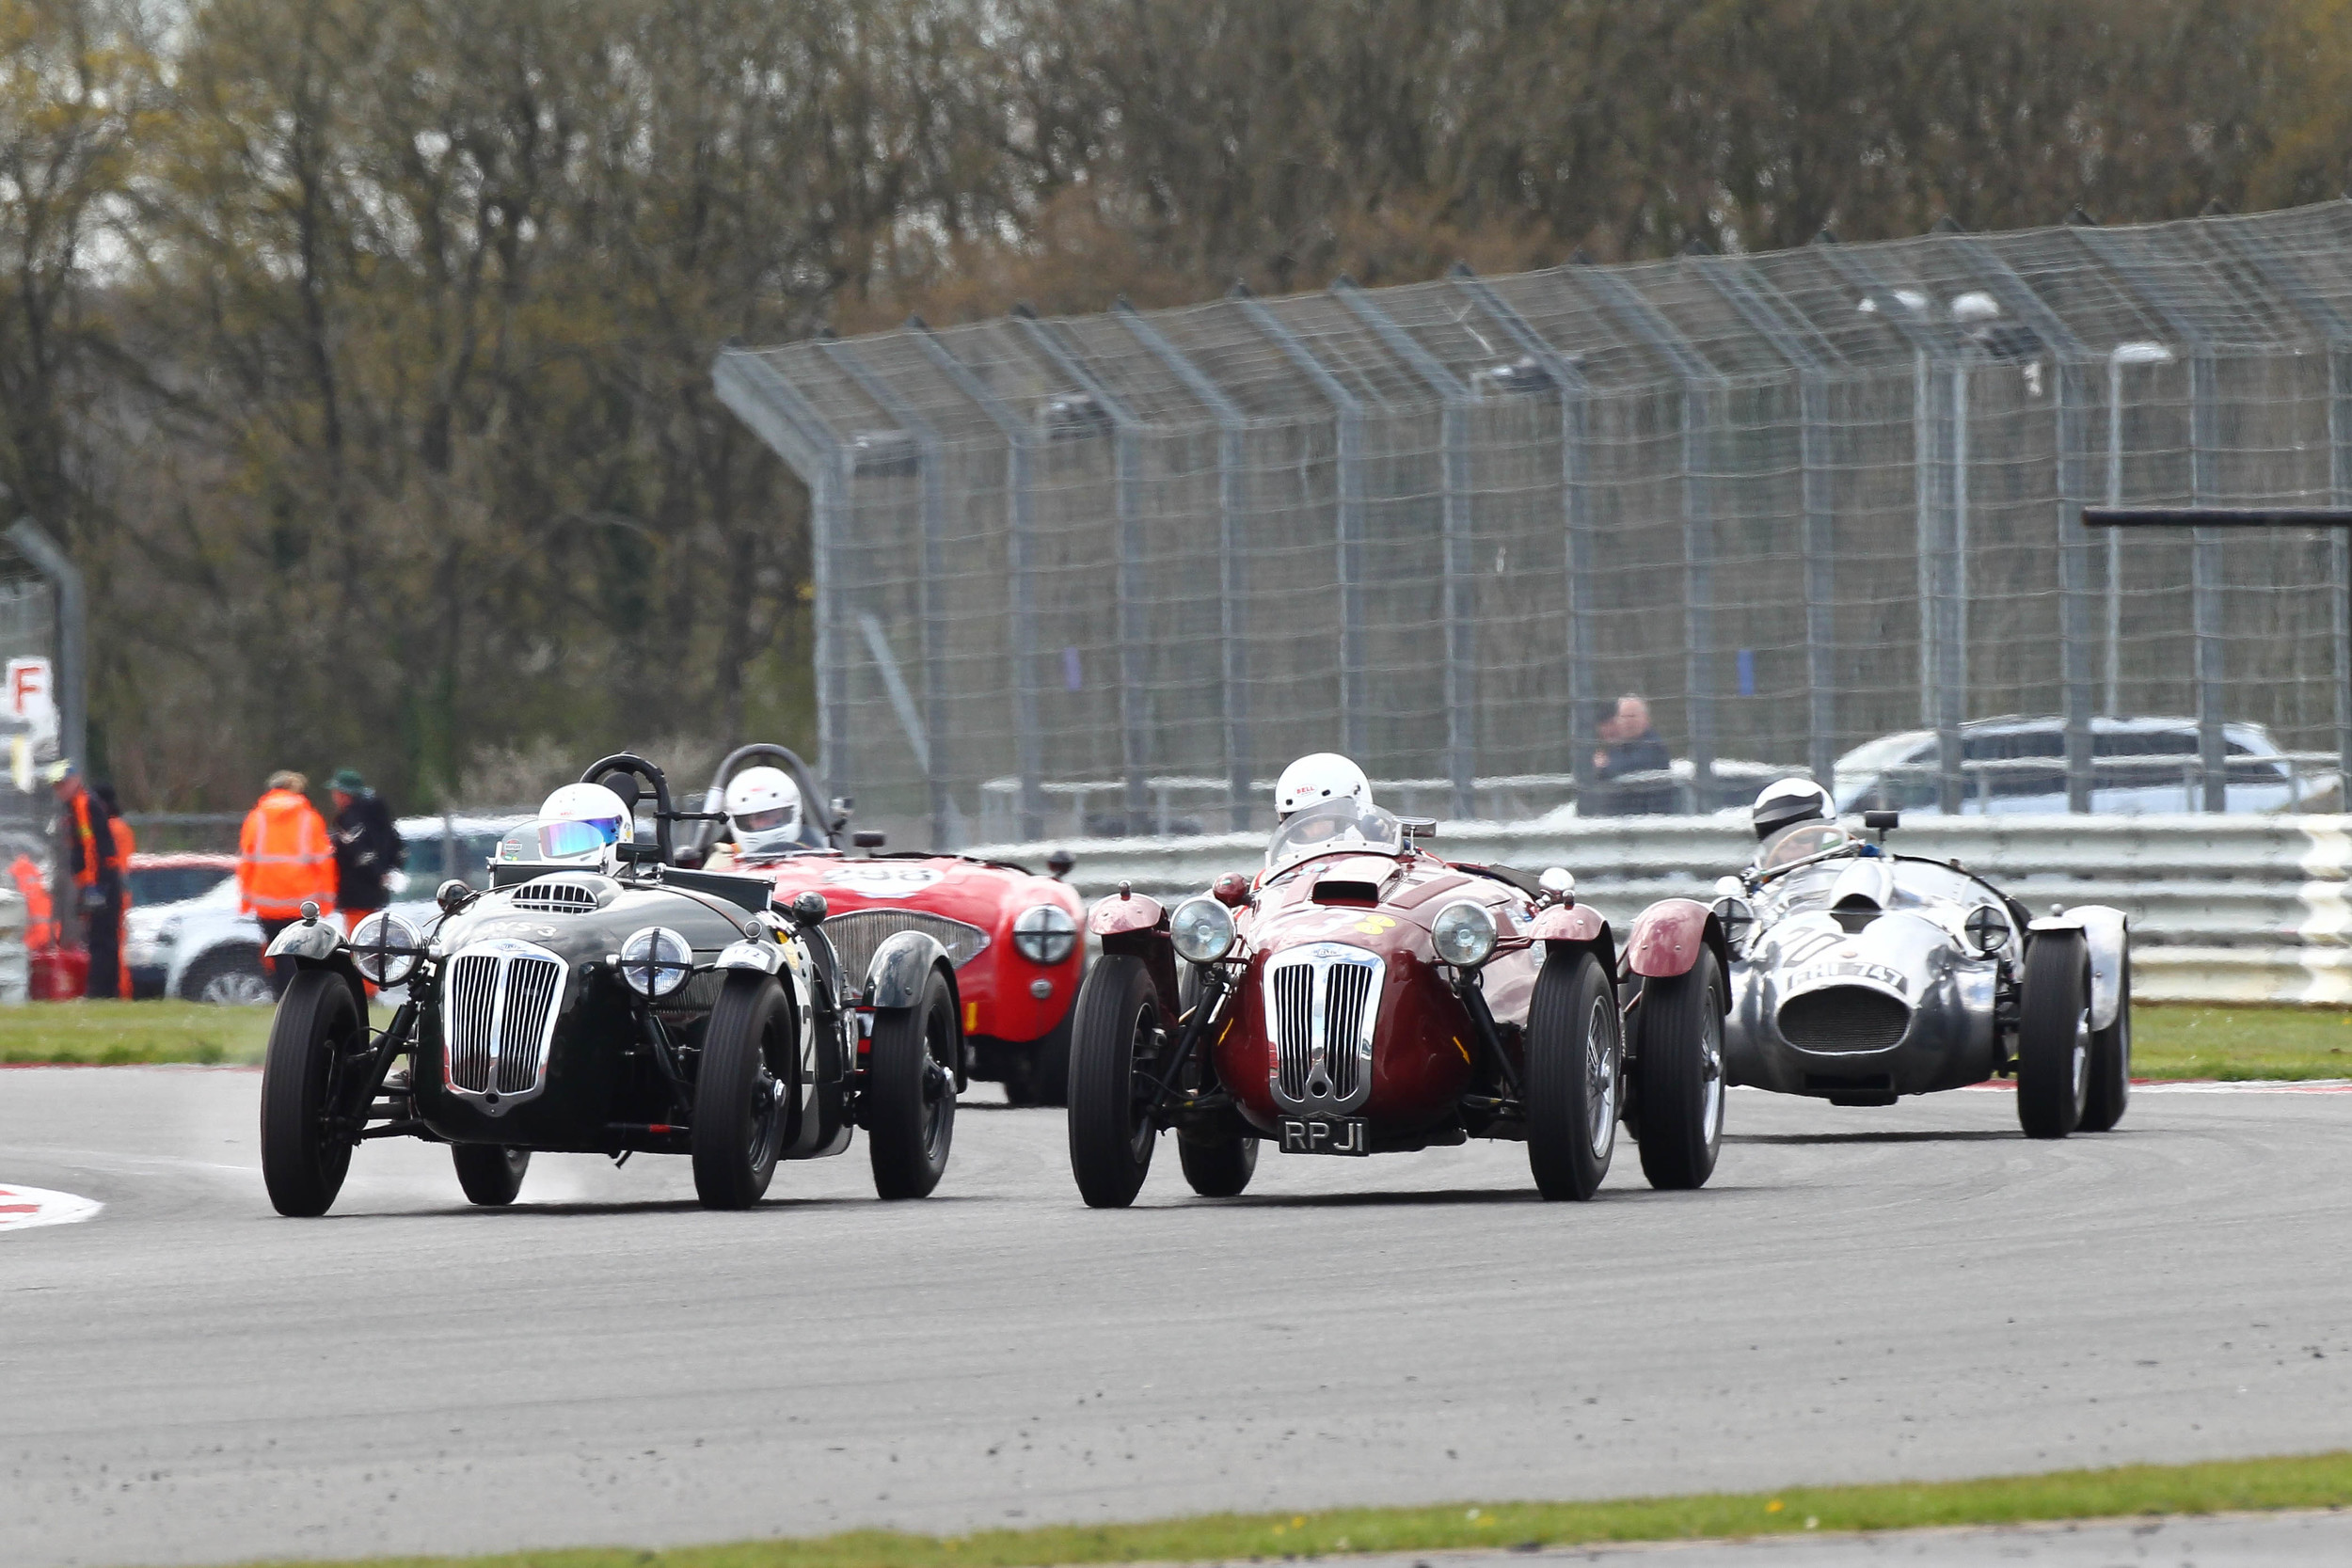 Ian Dalglish on the inside, John Ure on the outside both in Frazer Nash Le Mans Replicas whilst Peter Campbell (Wingfield Bristol) and Nick Matthews (Austin Healey) maintain a close watching brief.                                           Photo - Richard Styles